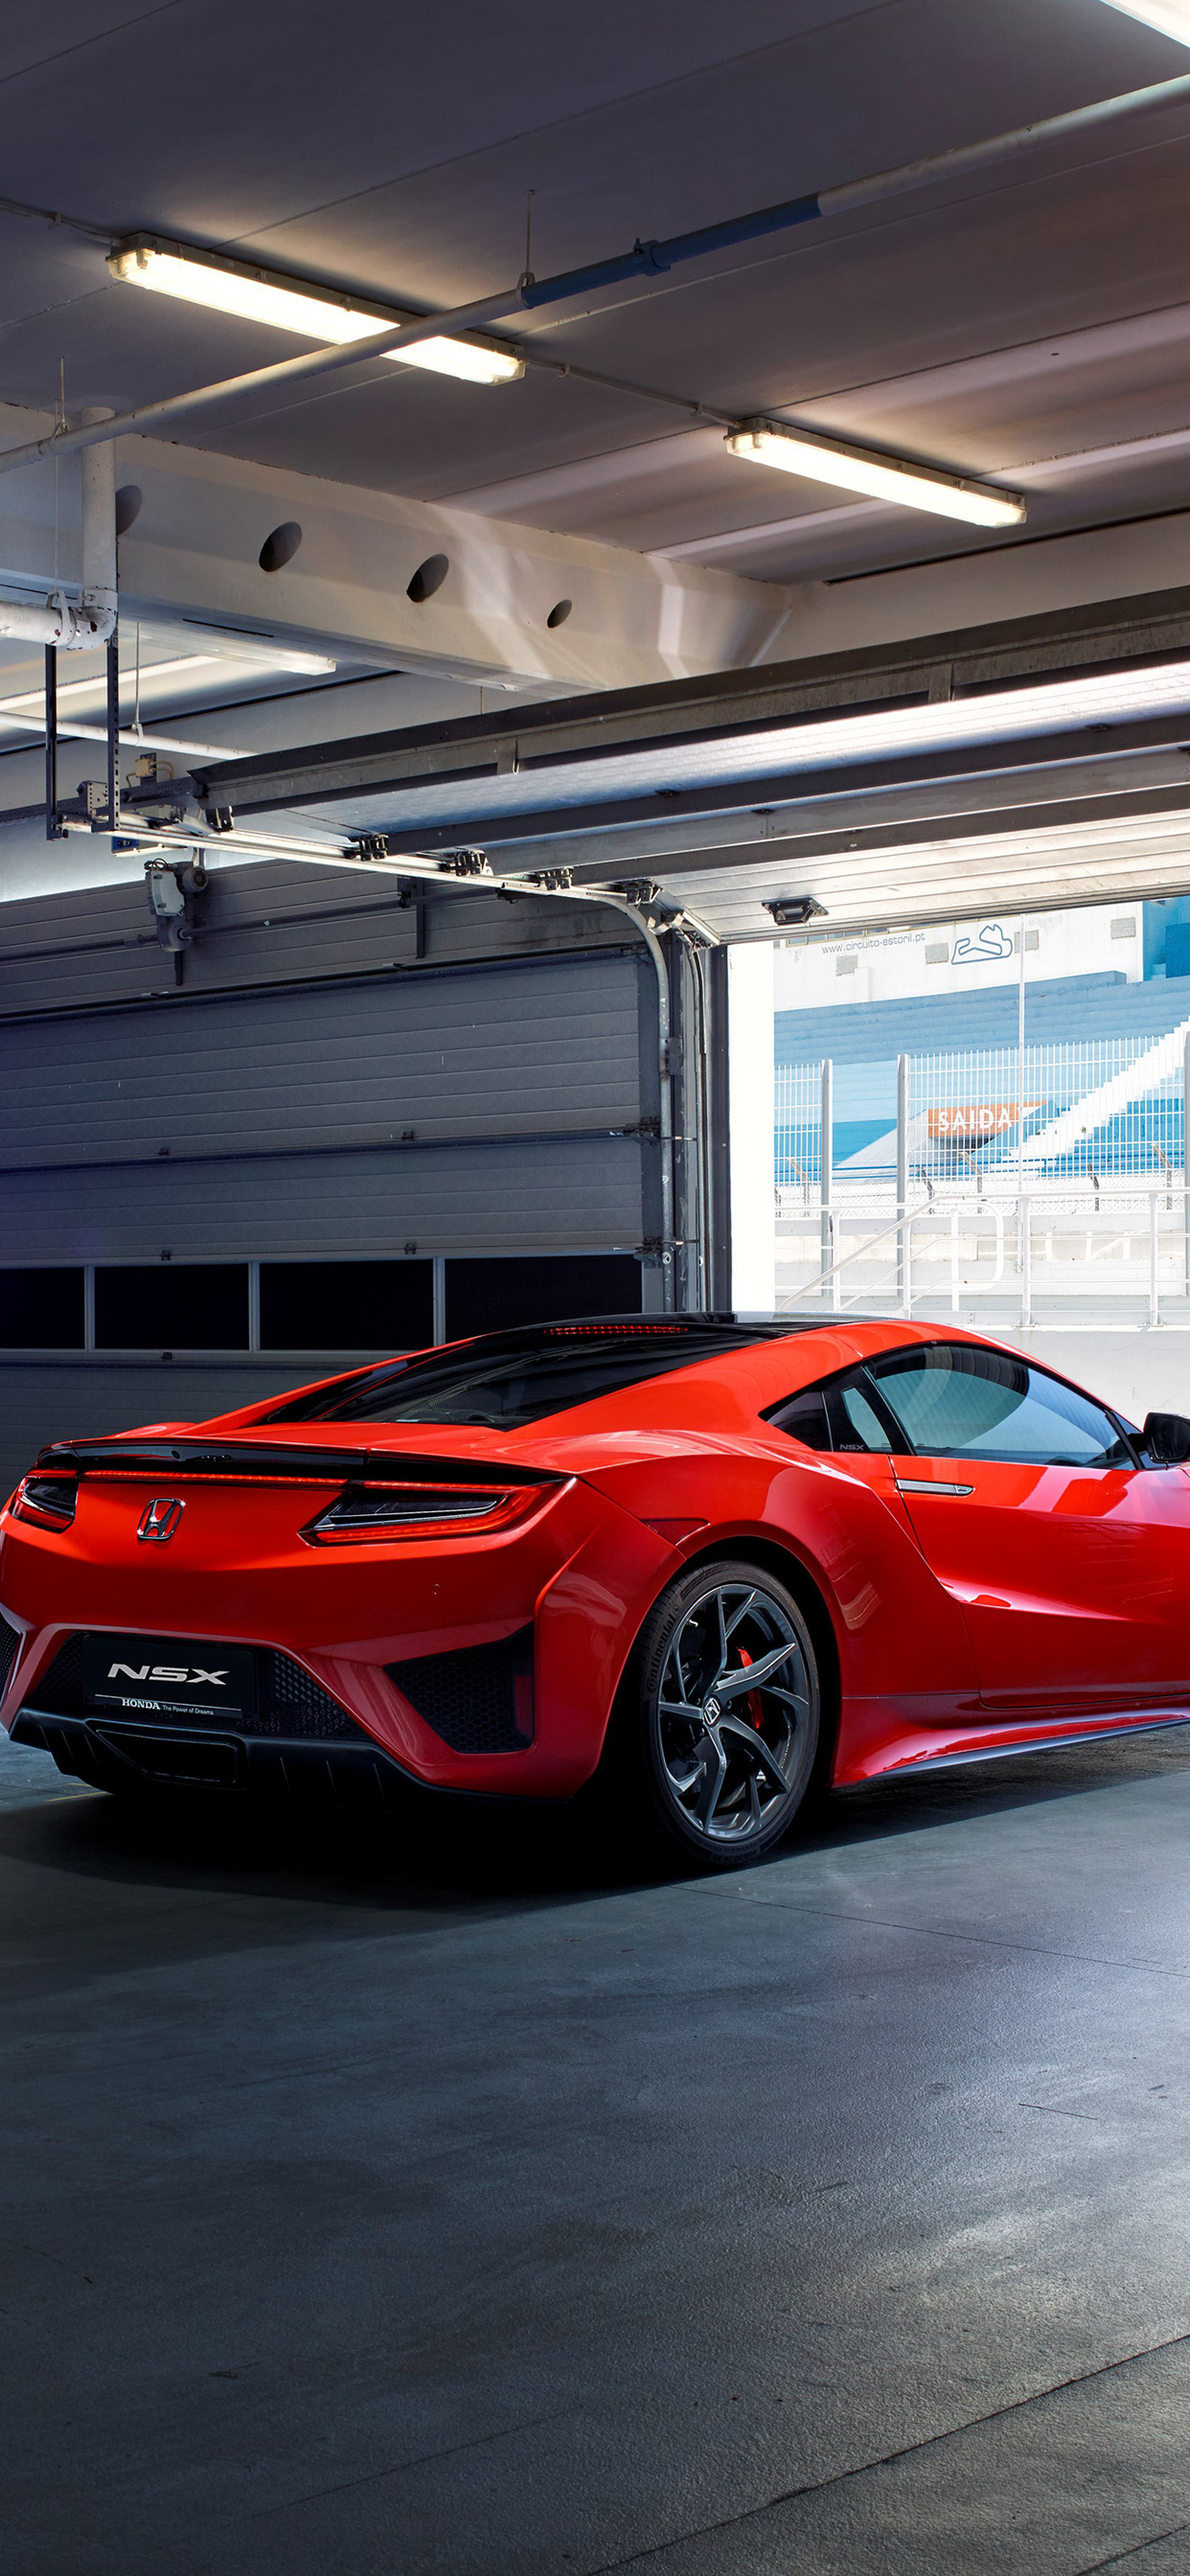 640x960 Red Acura Nsx Iphone 4 Wallpaper